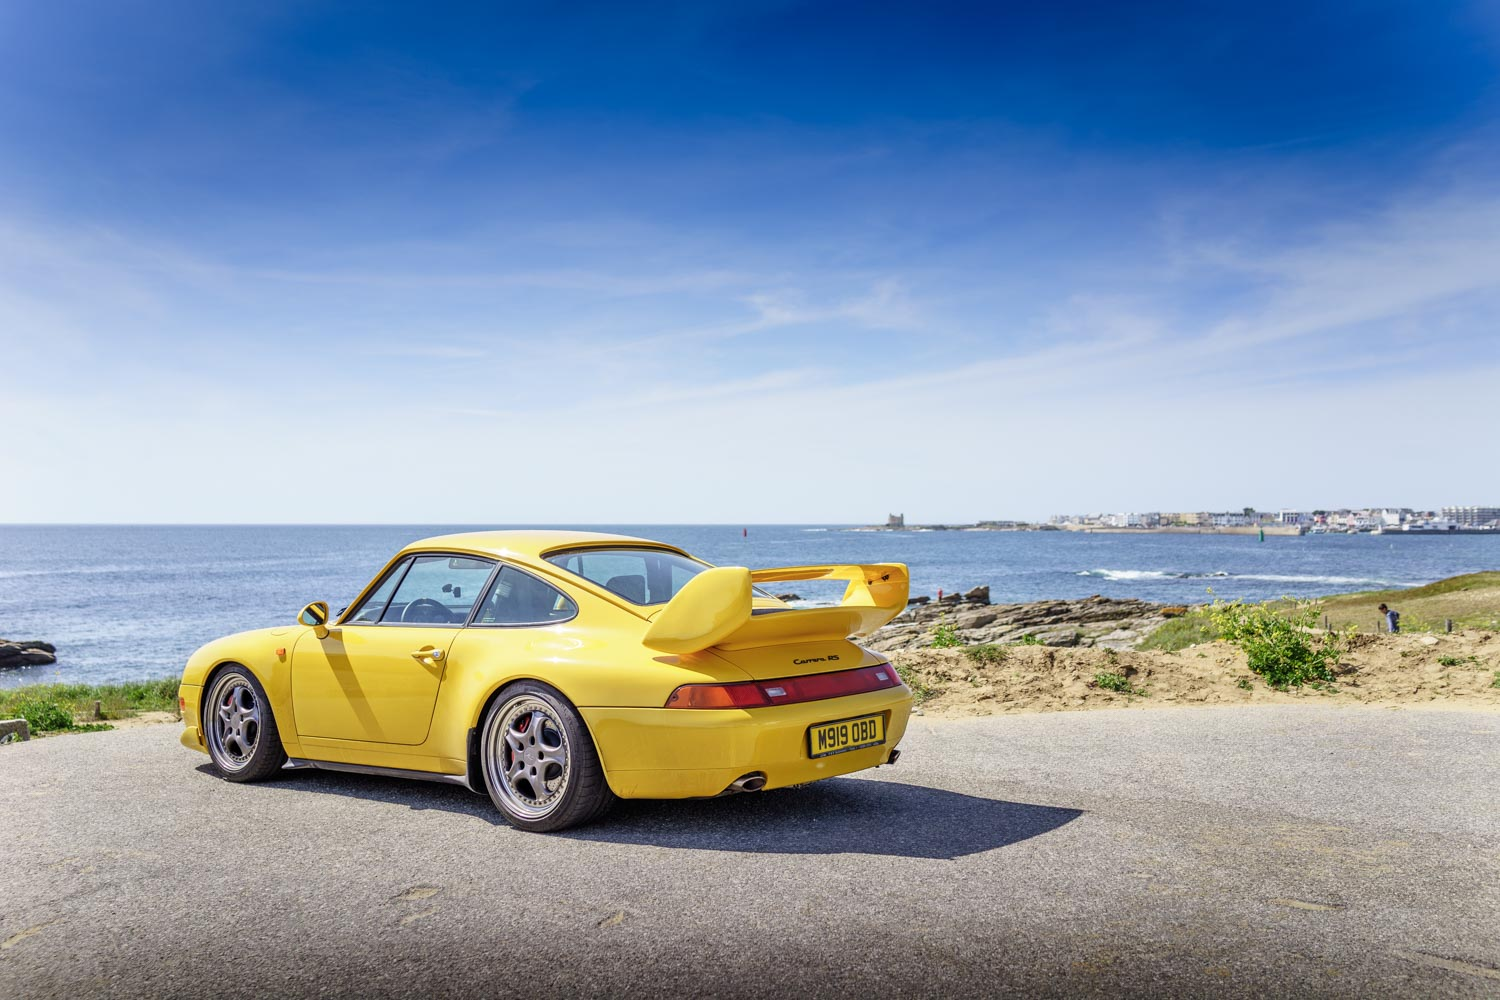 Finding solace. Destination Brittany. Porsche 993RS.